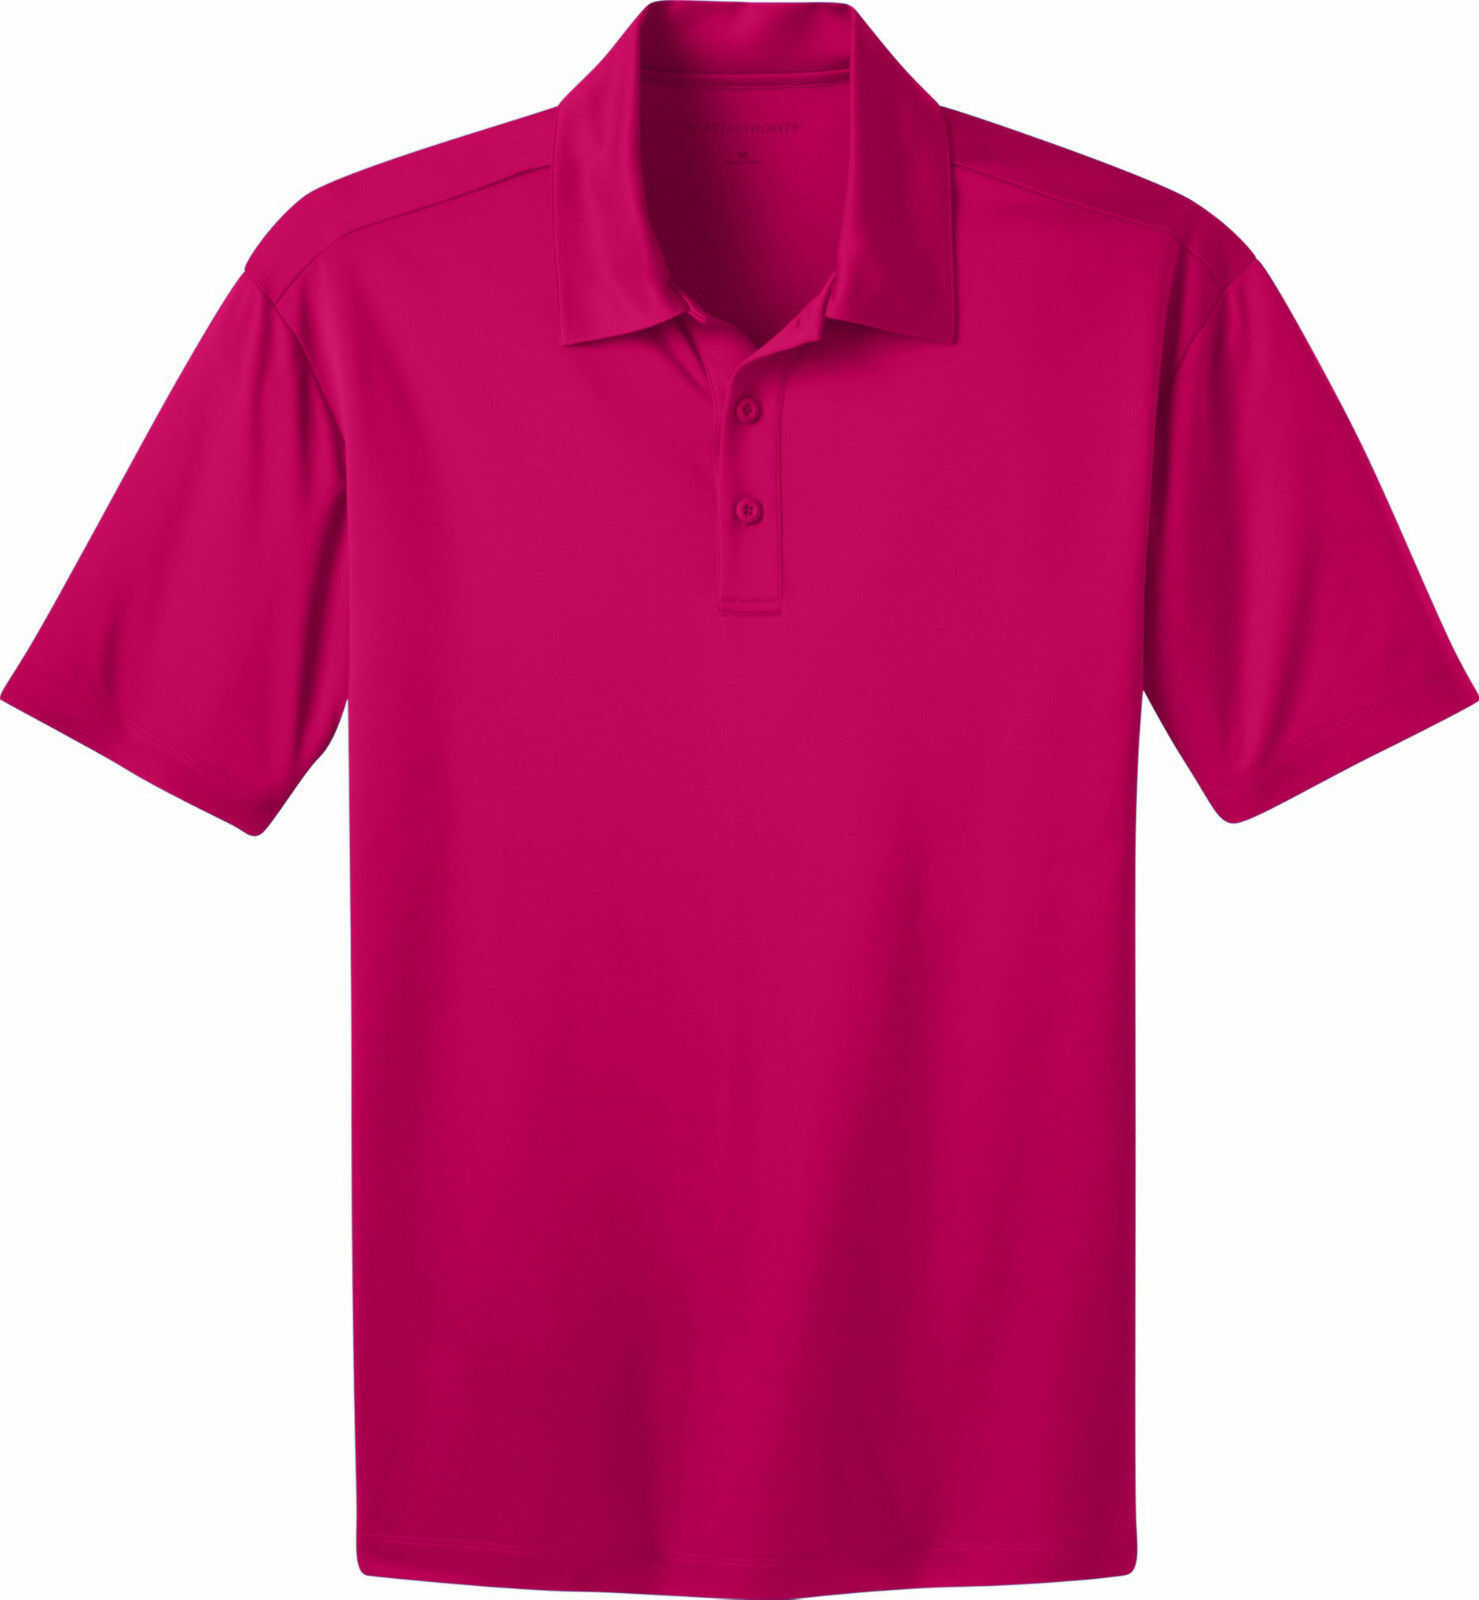 7XL Port Authority Silk Touch Sport Shirt Extended Sizes Red